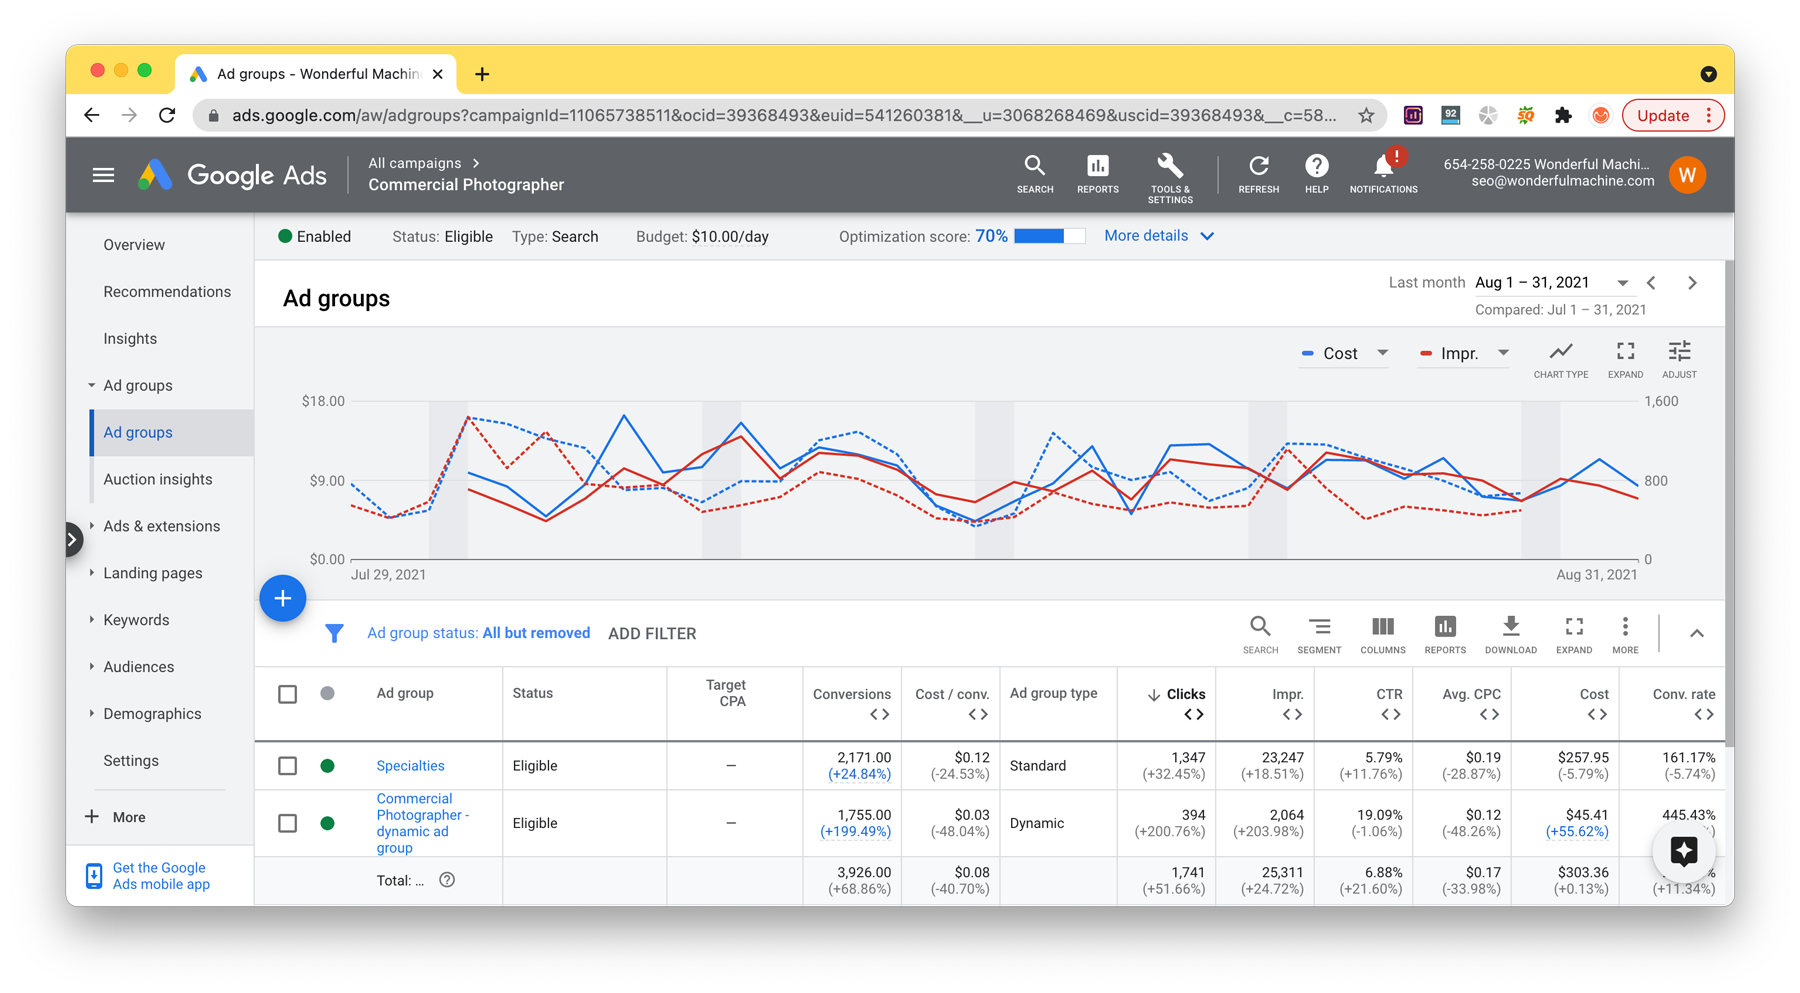 Screenshot of the report for our Google Ads campaign during August 2021